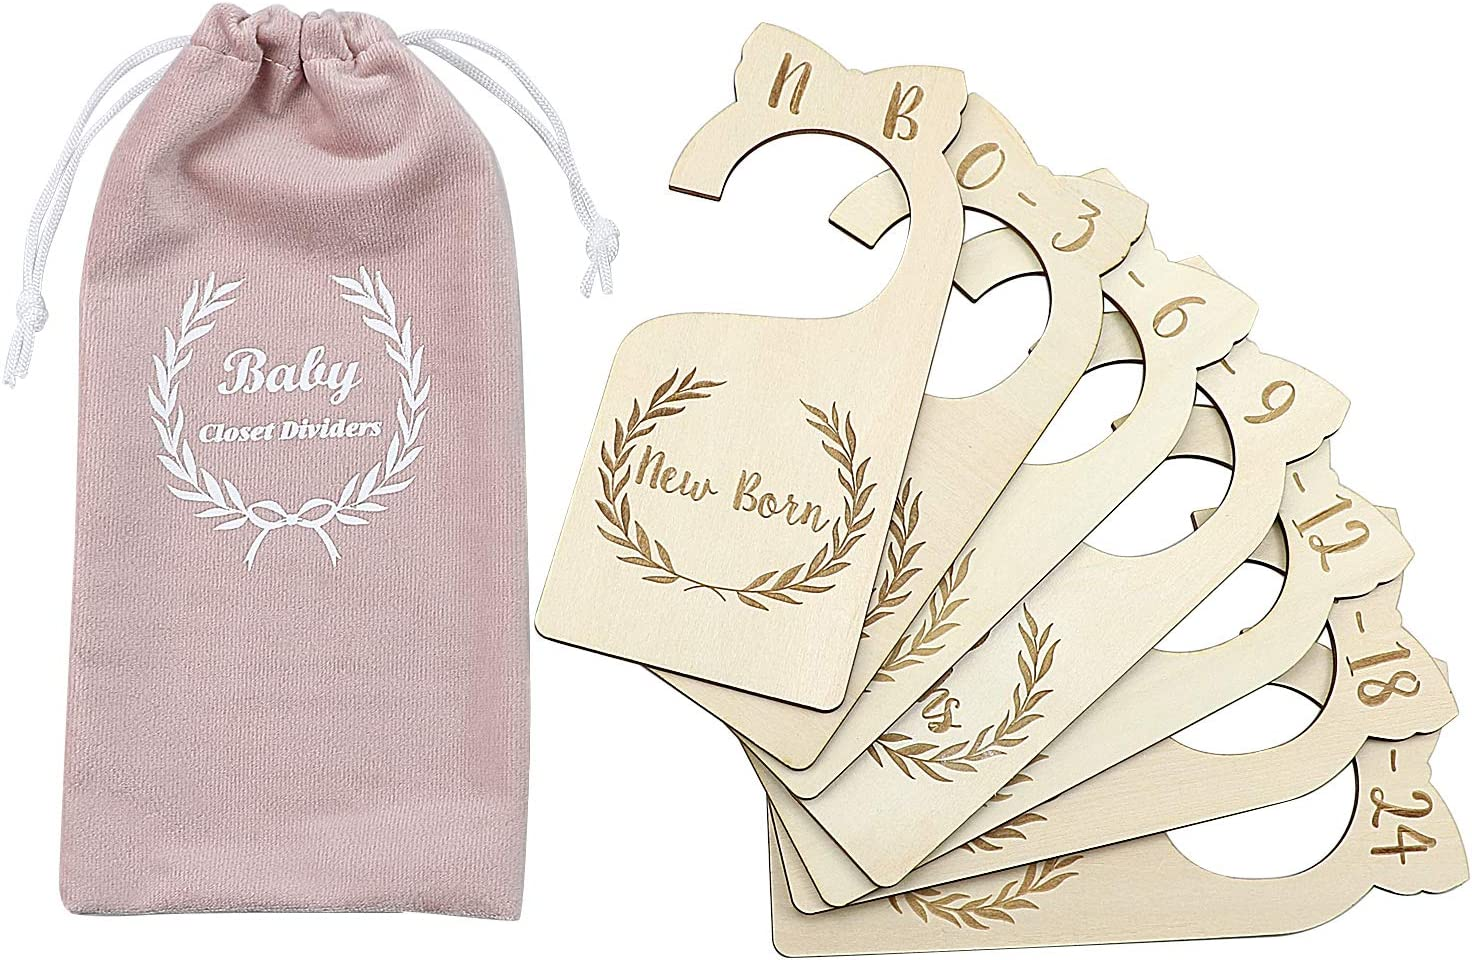 Premium Wood Baby Closet Dividers,Set of 7,from Newborn to 24 Month,Baby Closet Organizers,Nursery Decor,Baby Clothes Organizers (Style-1)